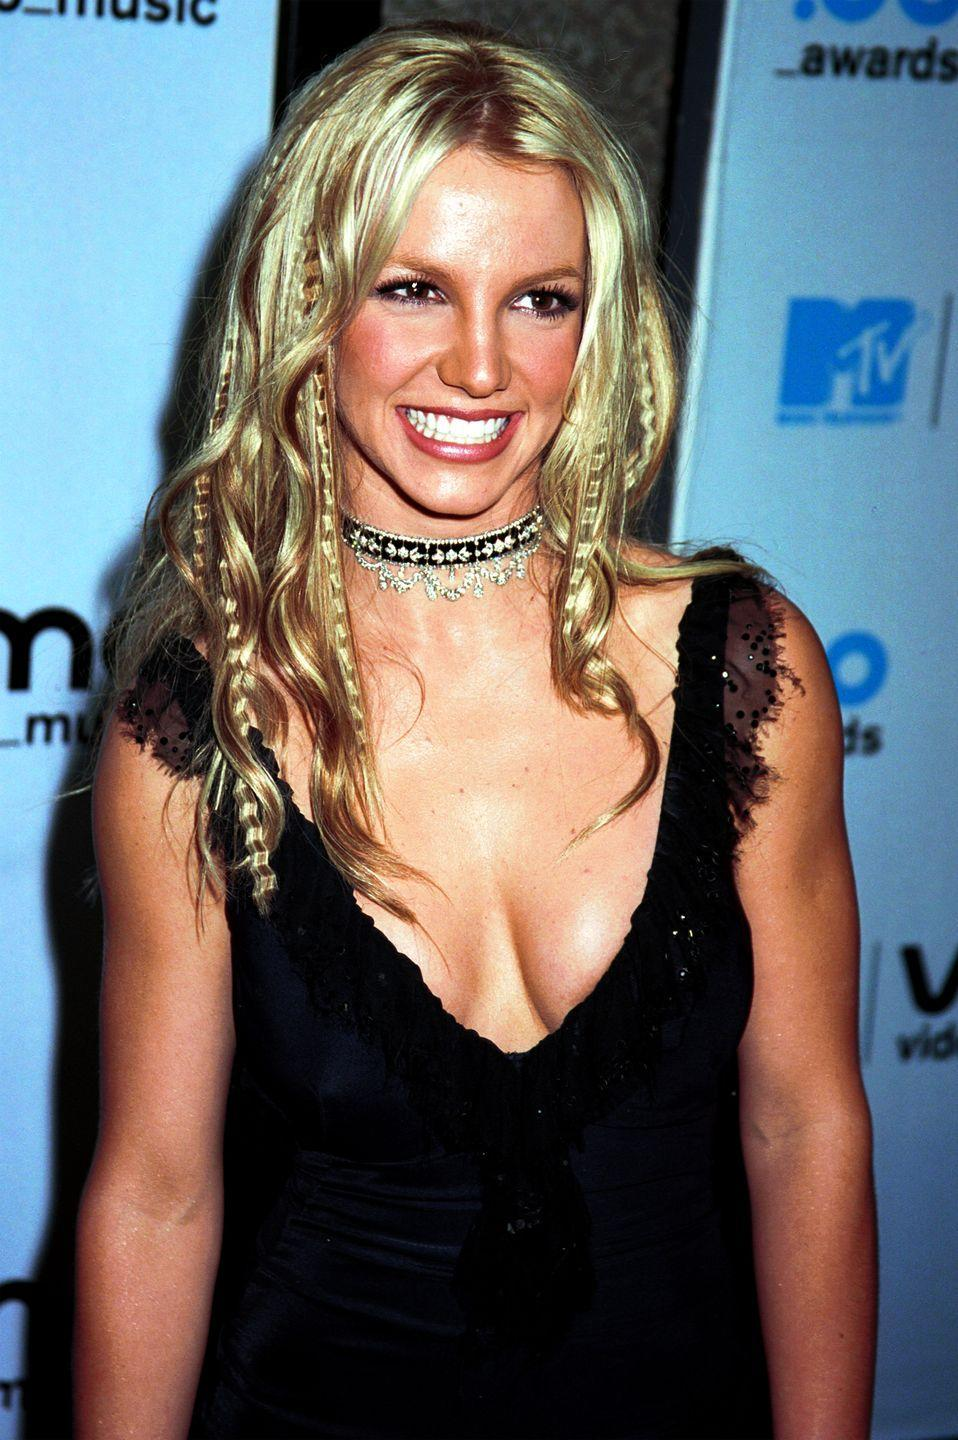 <p>Unlike the insanity that was crimped hair in the '90s, where people would sport an entire head of crimped hair, the trend in the 2000s was just a few select crimped pieces. Britney Spears at the MTV VMAs was the ultimate goal. </p>